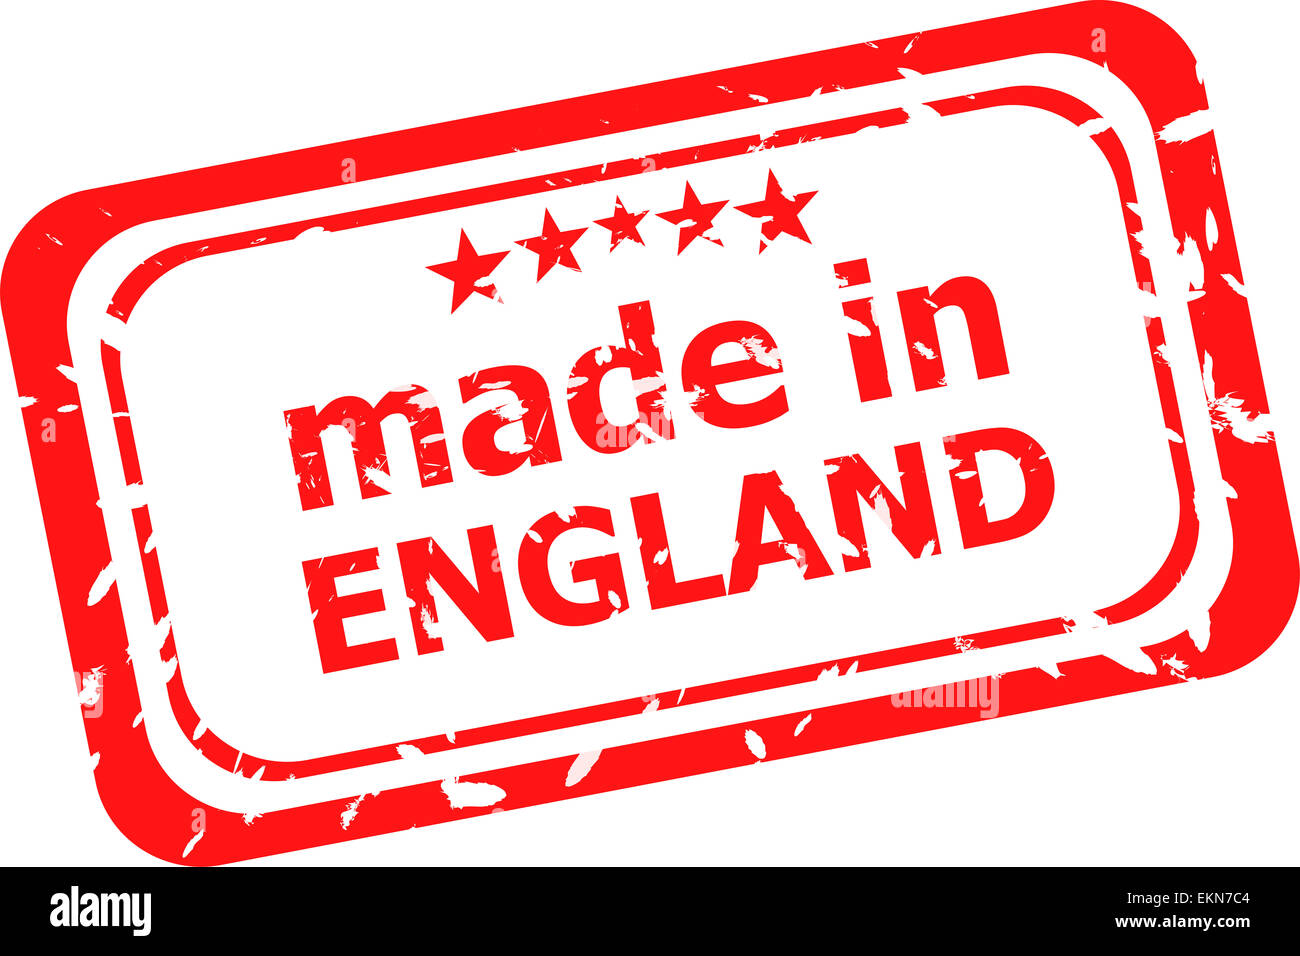 Red rubber stamp of made in england - Stock Image